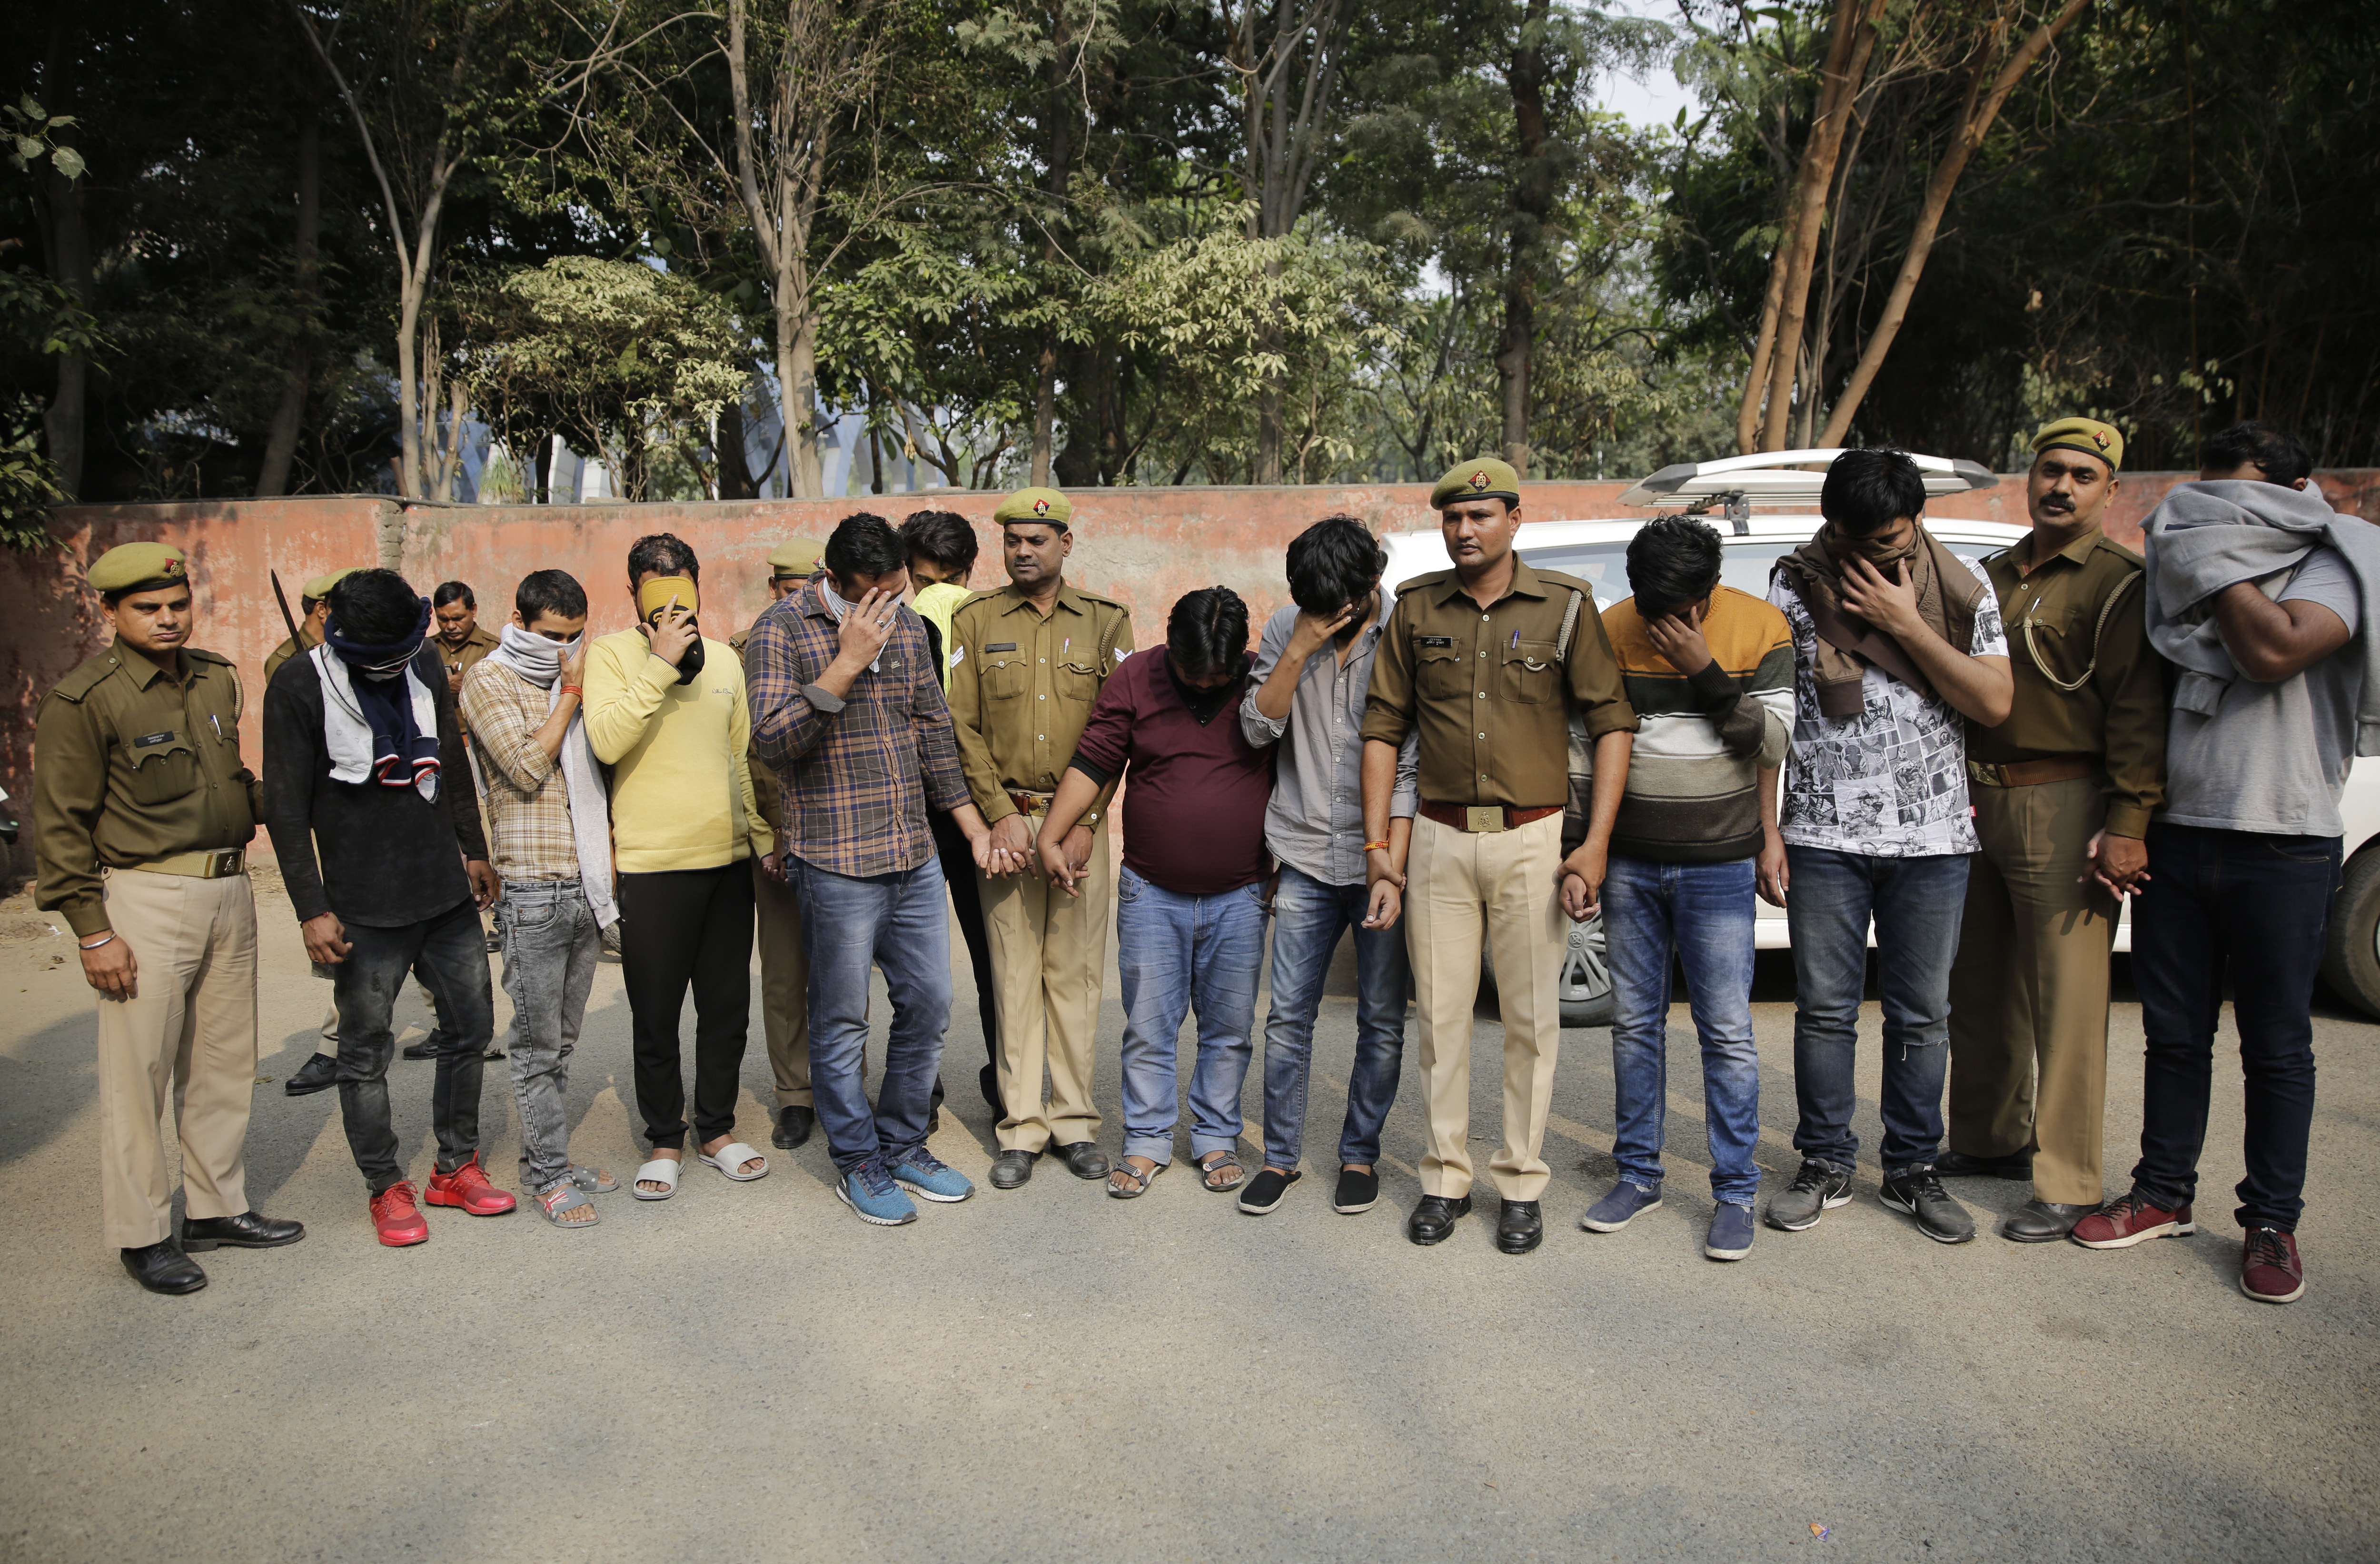 Alleged fraudsters are presented before media at a police station in Noida, a suburb of New Delhi